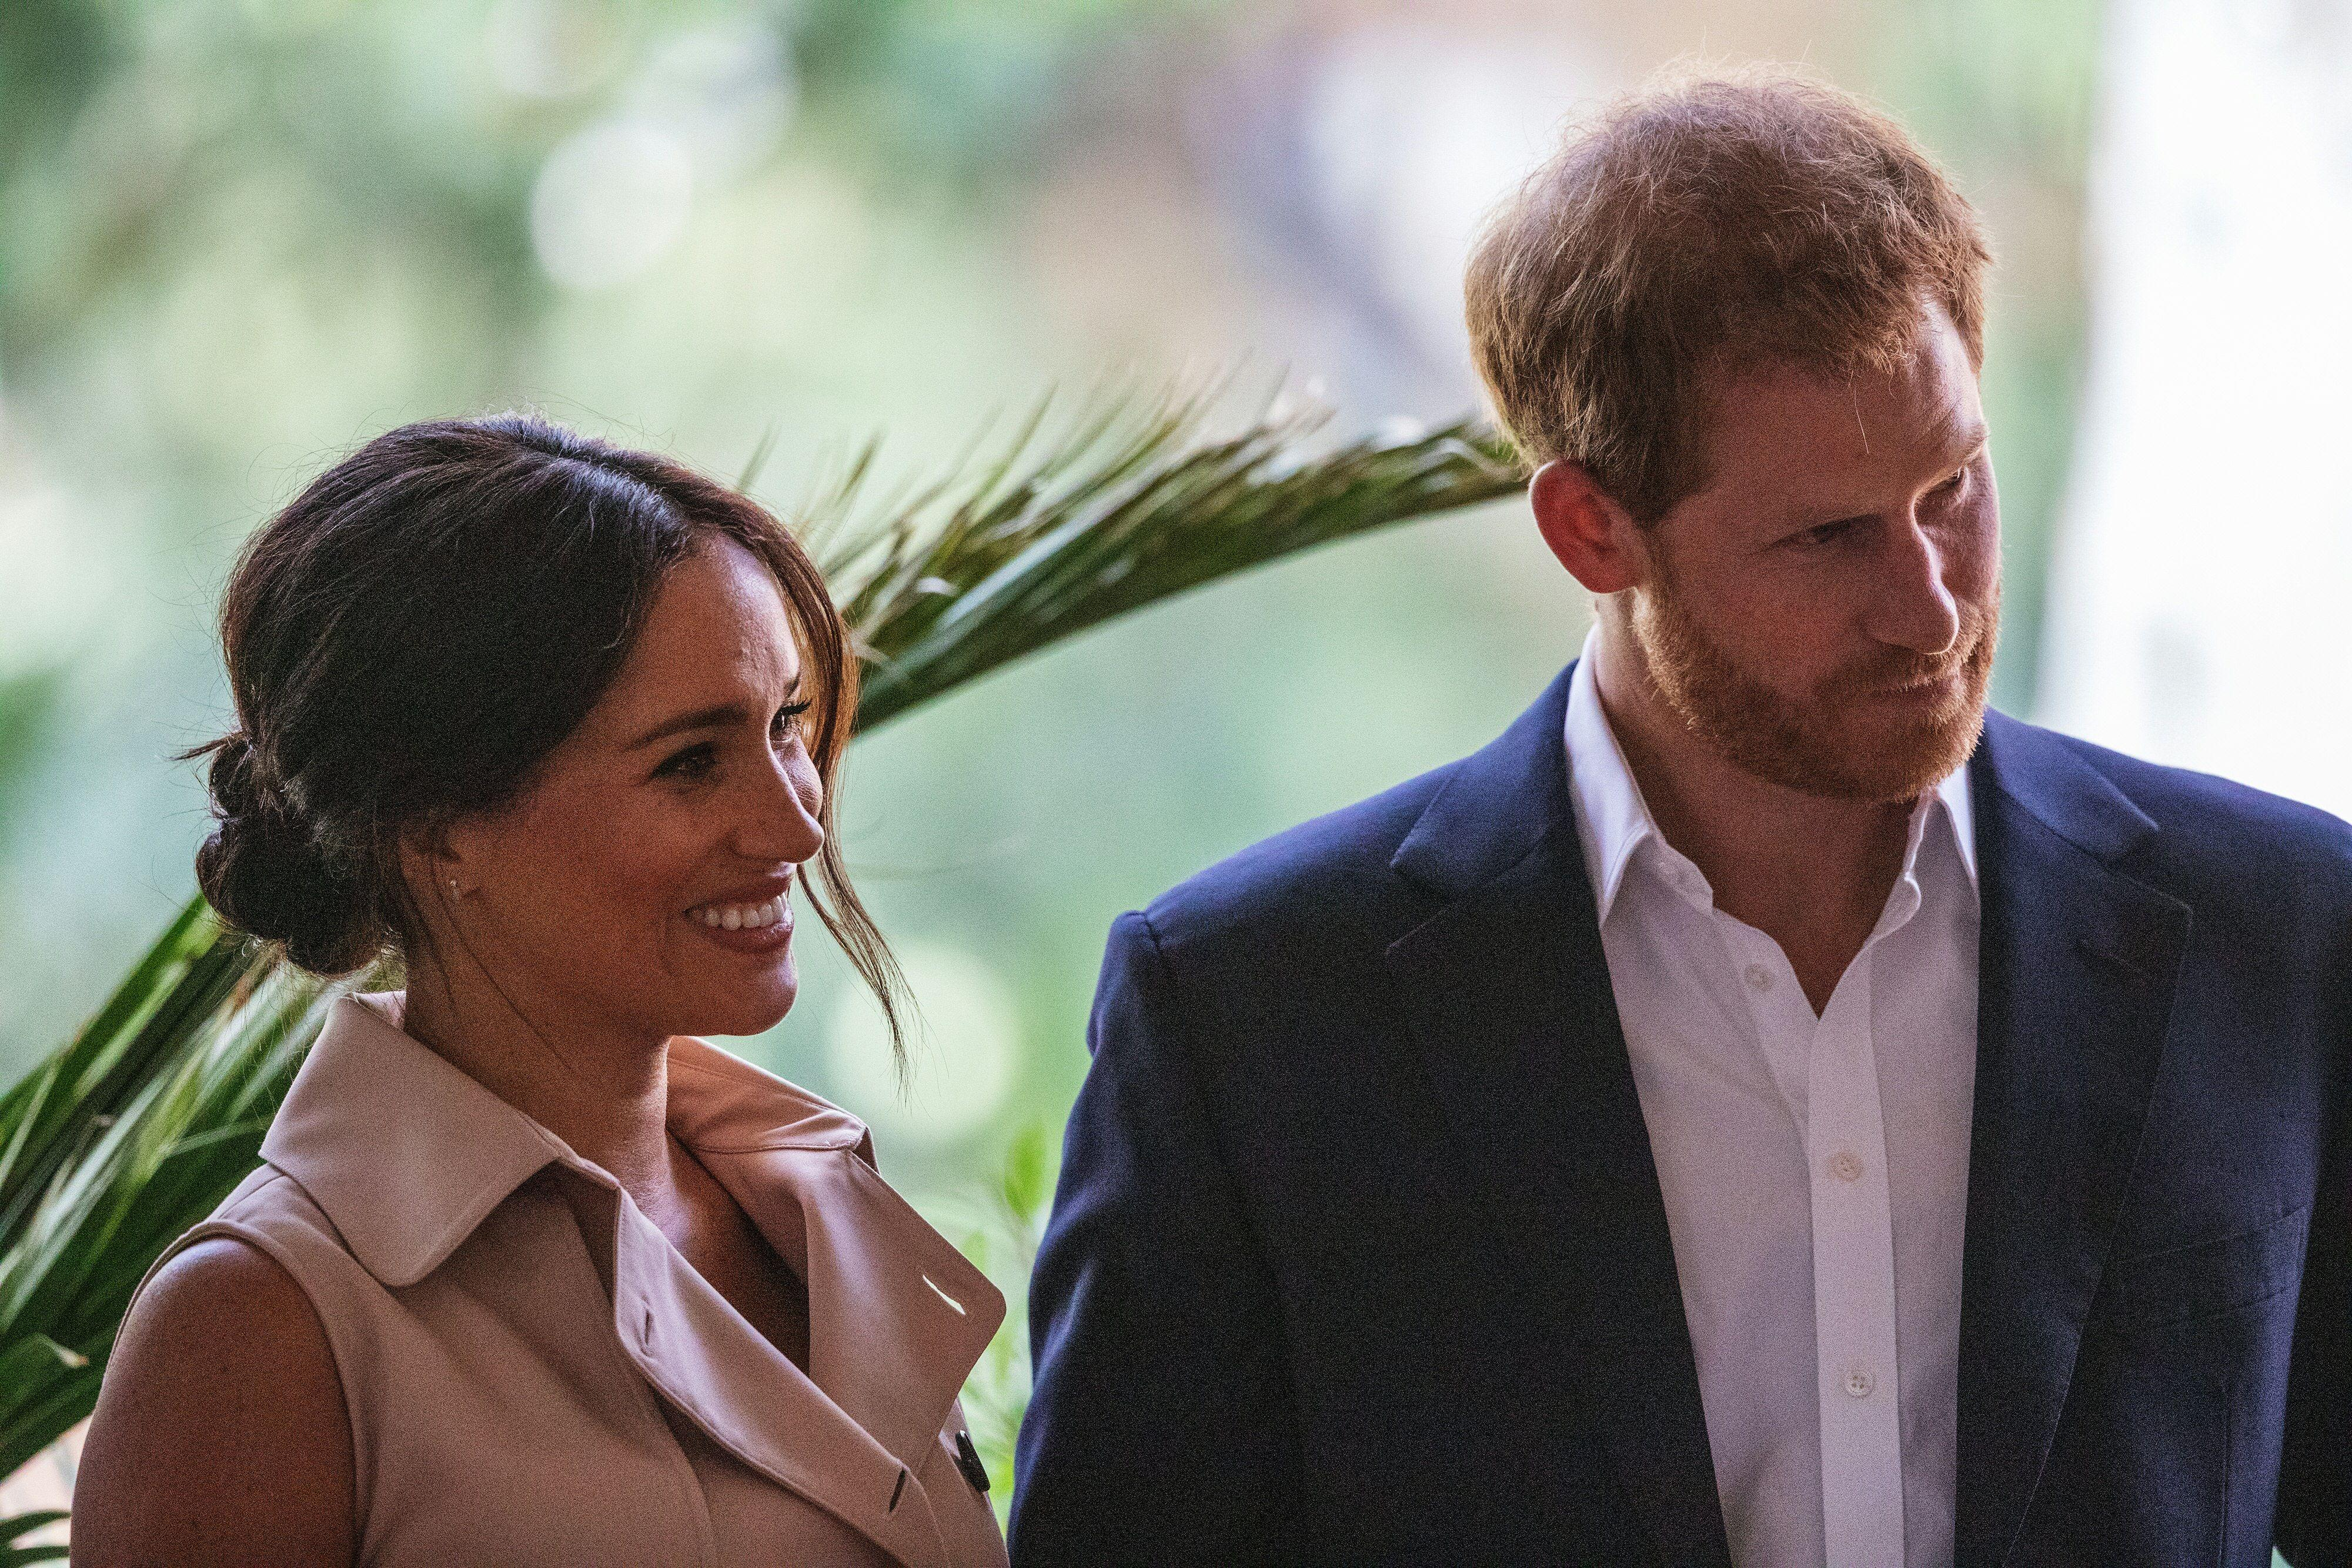 Meghan Markle and Prince Harry say it's been 'special' spending quality time at home with Archie